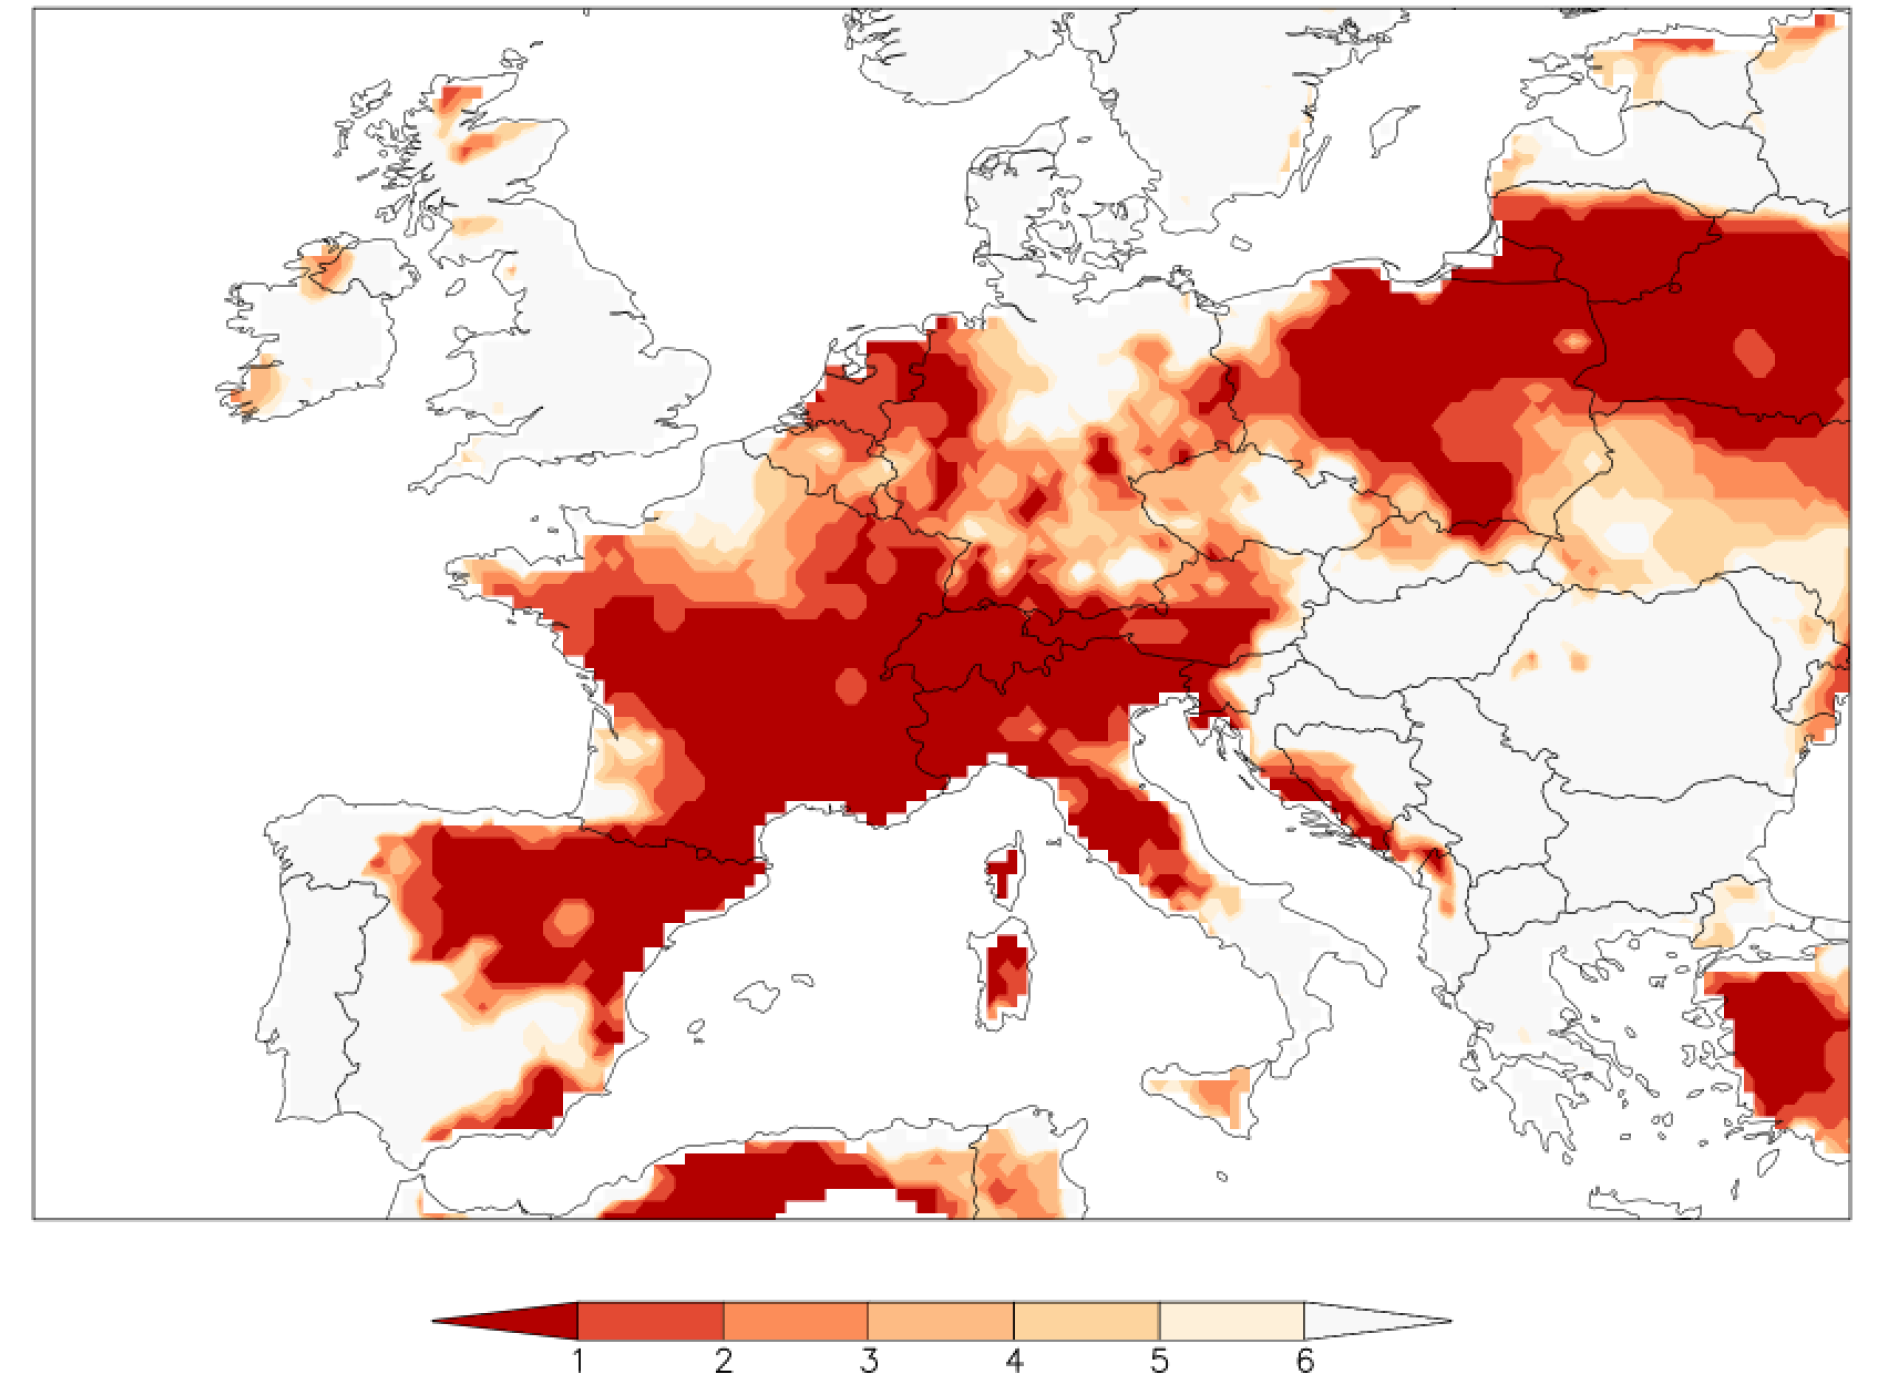 Rapid results in on climate change and the European heat wave | Ars on natural resource map of europe, regional map of europe, wales map of europe, world map of europe, ecological map of europe, biome map of europe, population density of europe, blank map of europe, physical map of europe, thematic map of europe, religion map of europe, map of western europe, soil map europe, home map of europe, altitude map of europe, map of languages in europe, climate map australia, climate map europe in 1914, maritime climate map europe, climate of north and south america,